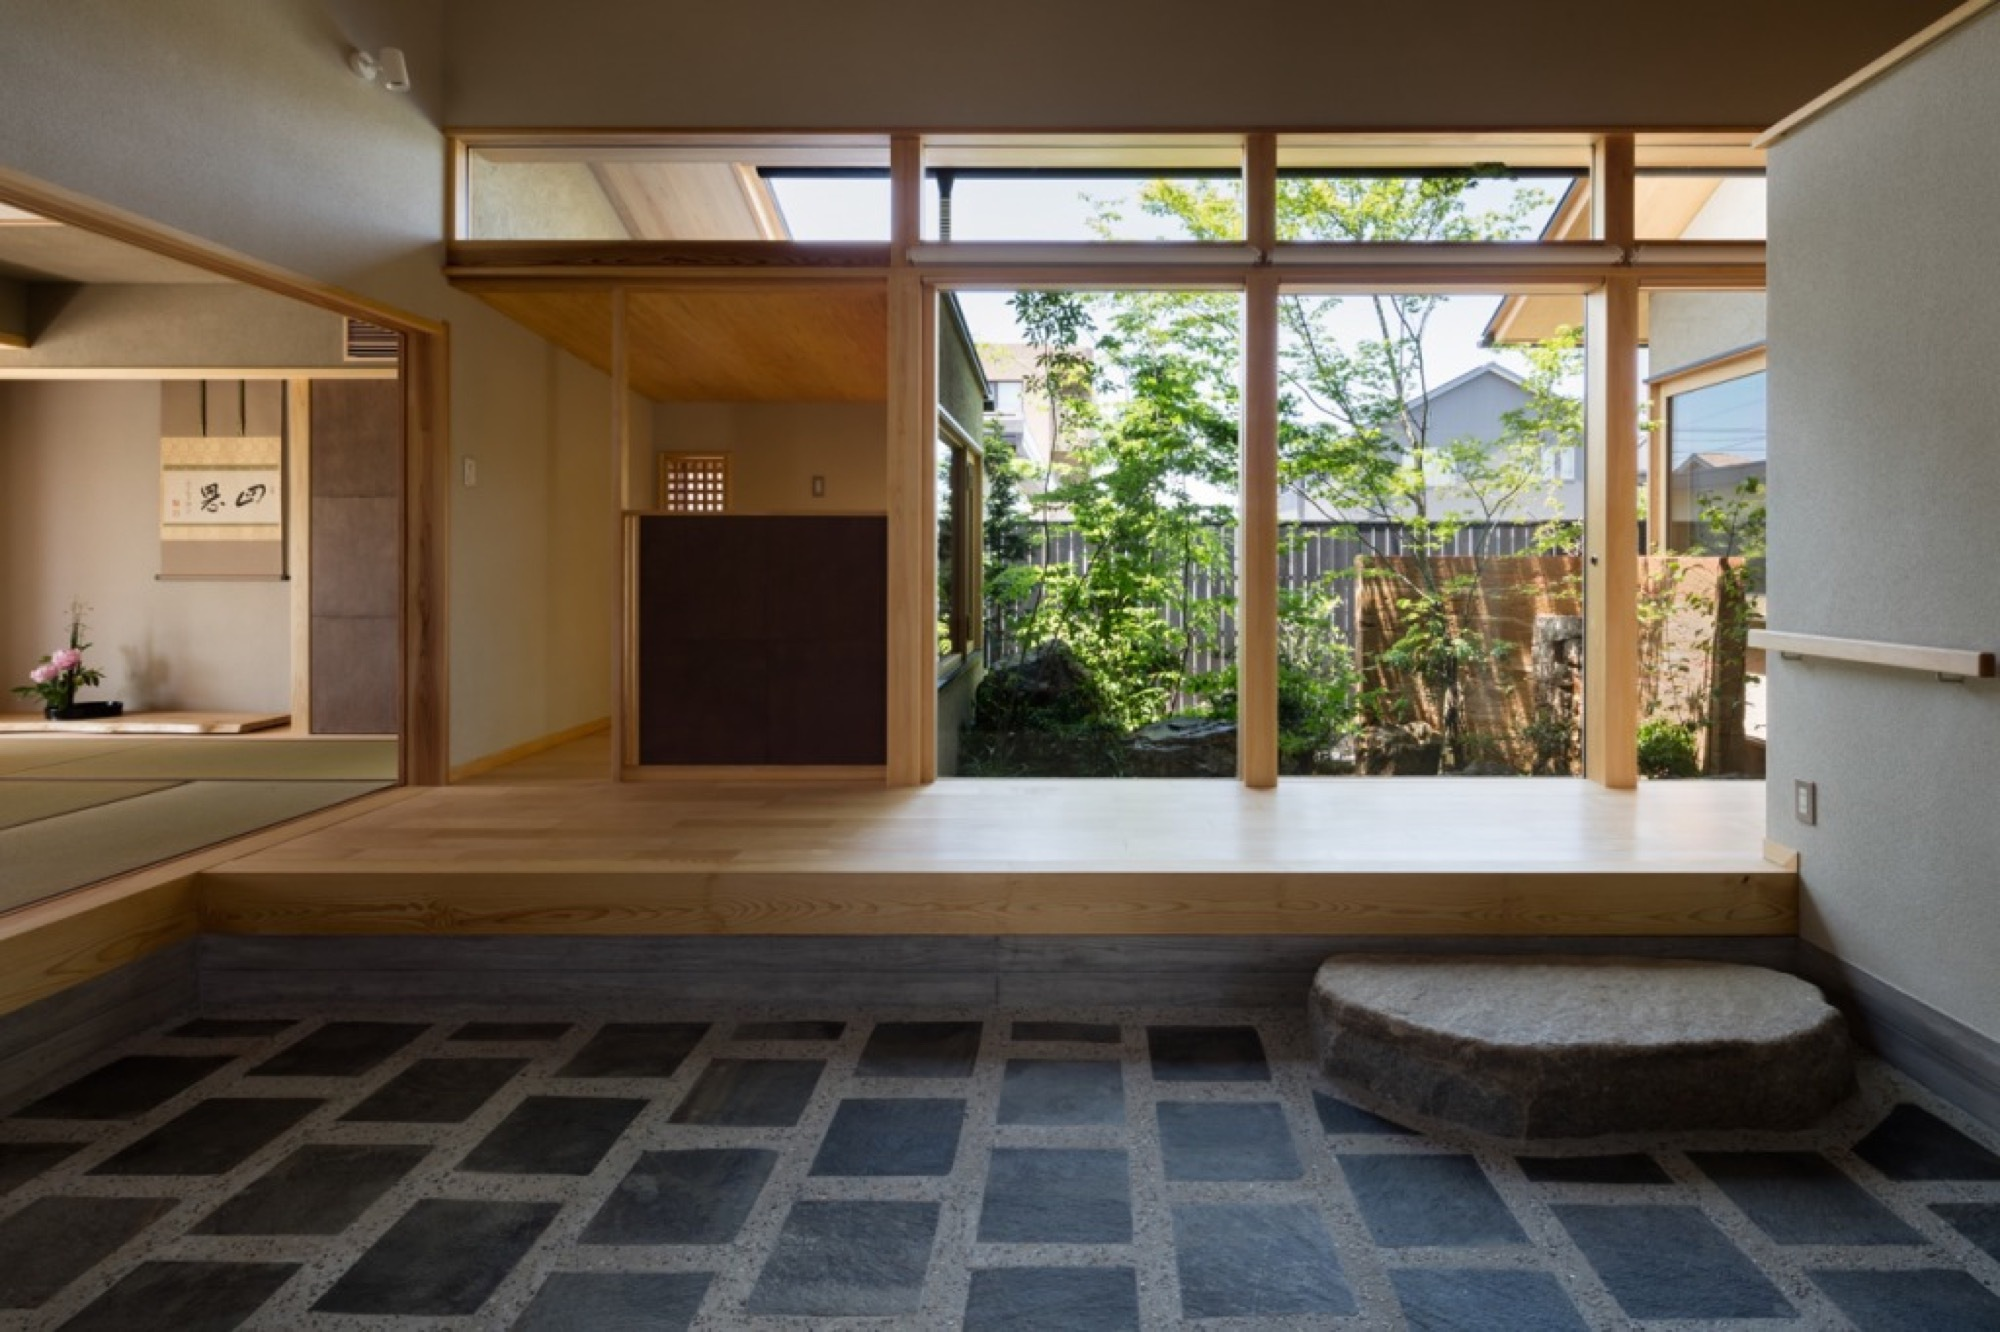 house with a doma salon takashi okuno architectural design office shigeo ogawa architectural design office